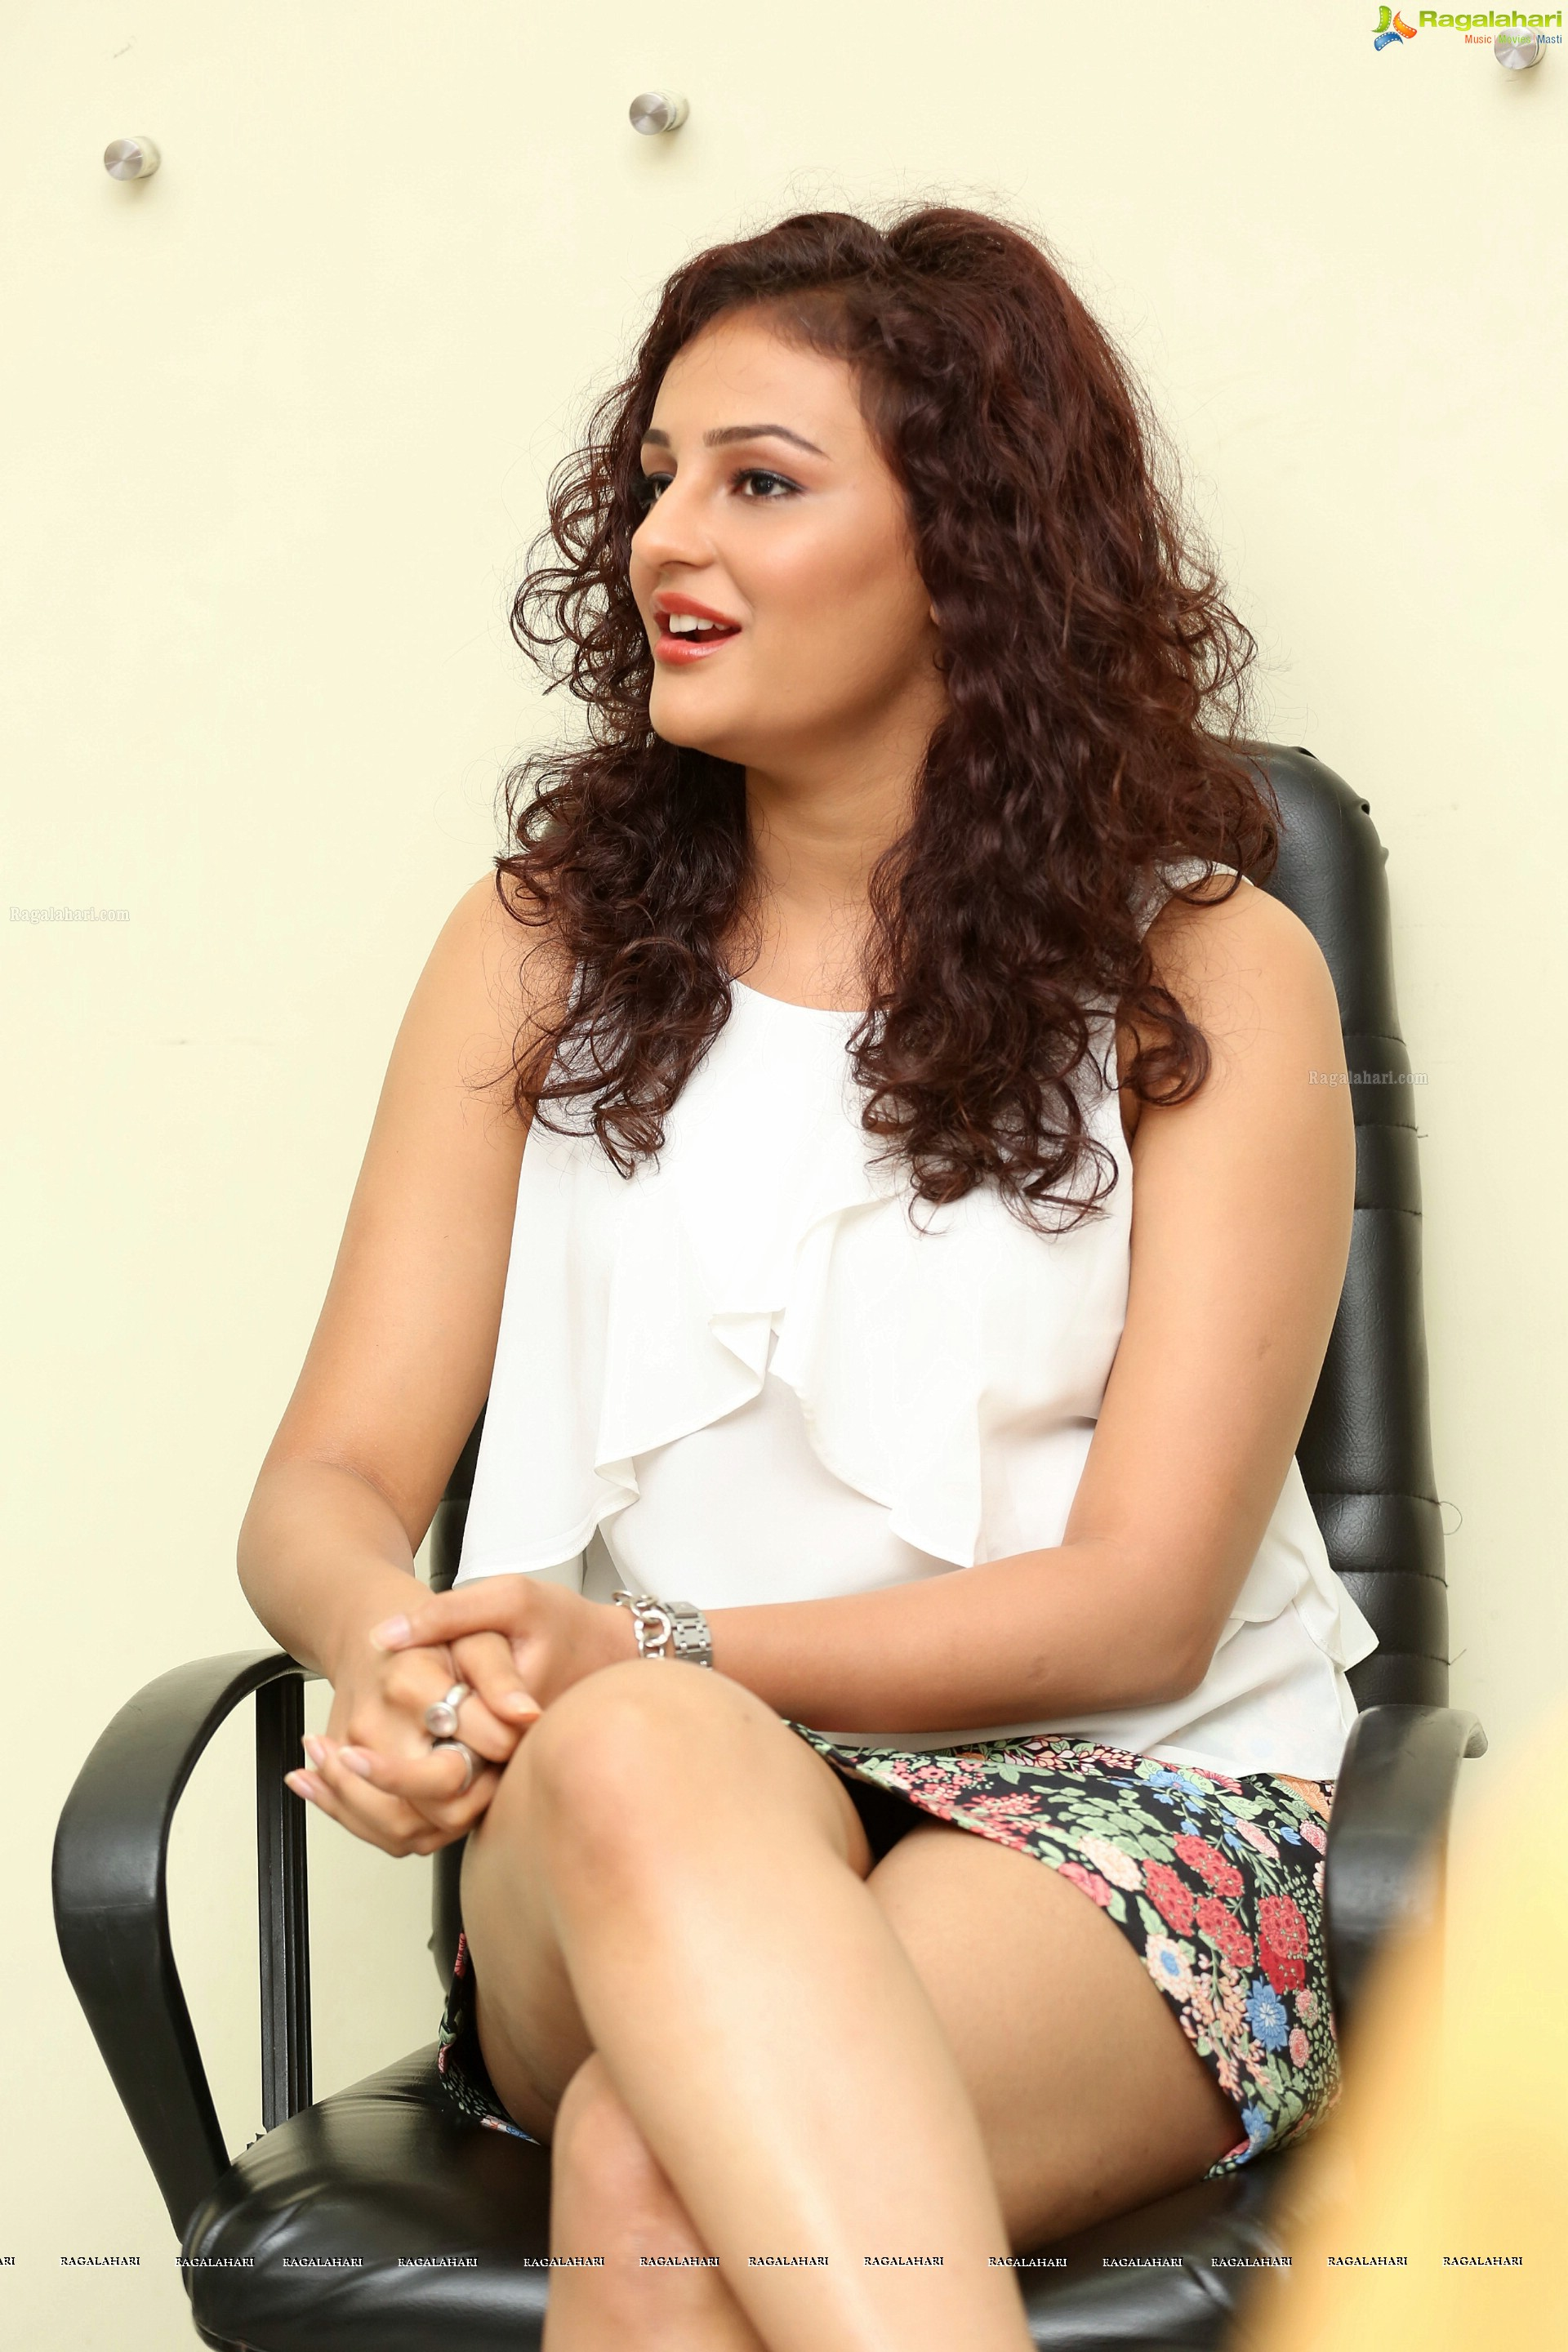 Seerat Kapoor In Micro Mini Skirt Shows Her Inner Thighs And Panty